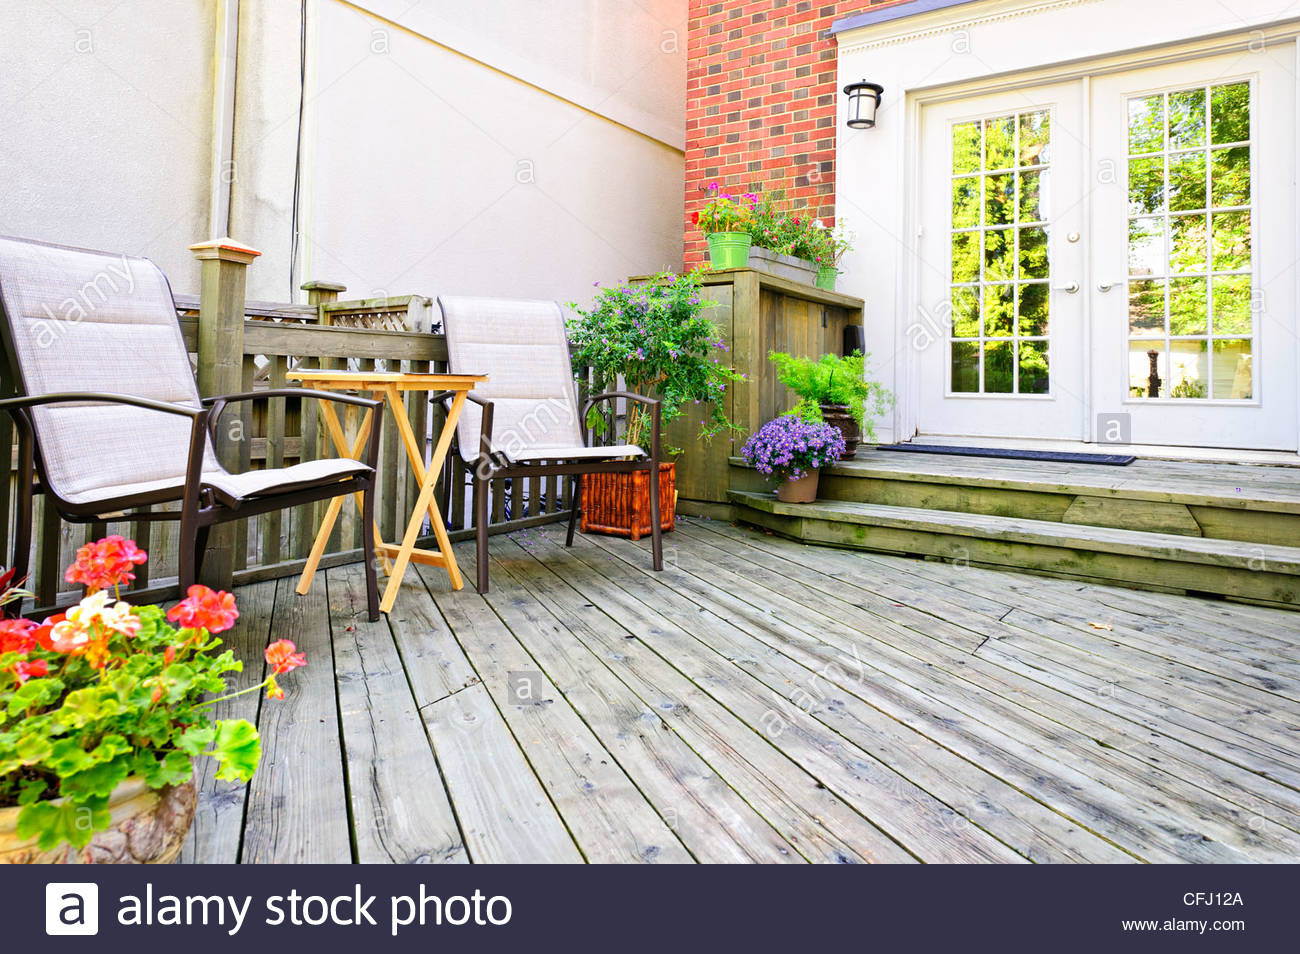 Wooden Deck On House With Chairs And French Doors Stock regarding measurements 1300 X 954